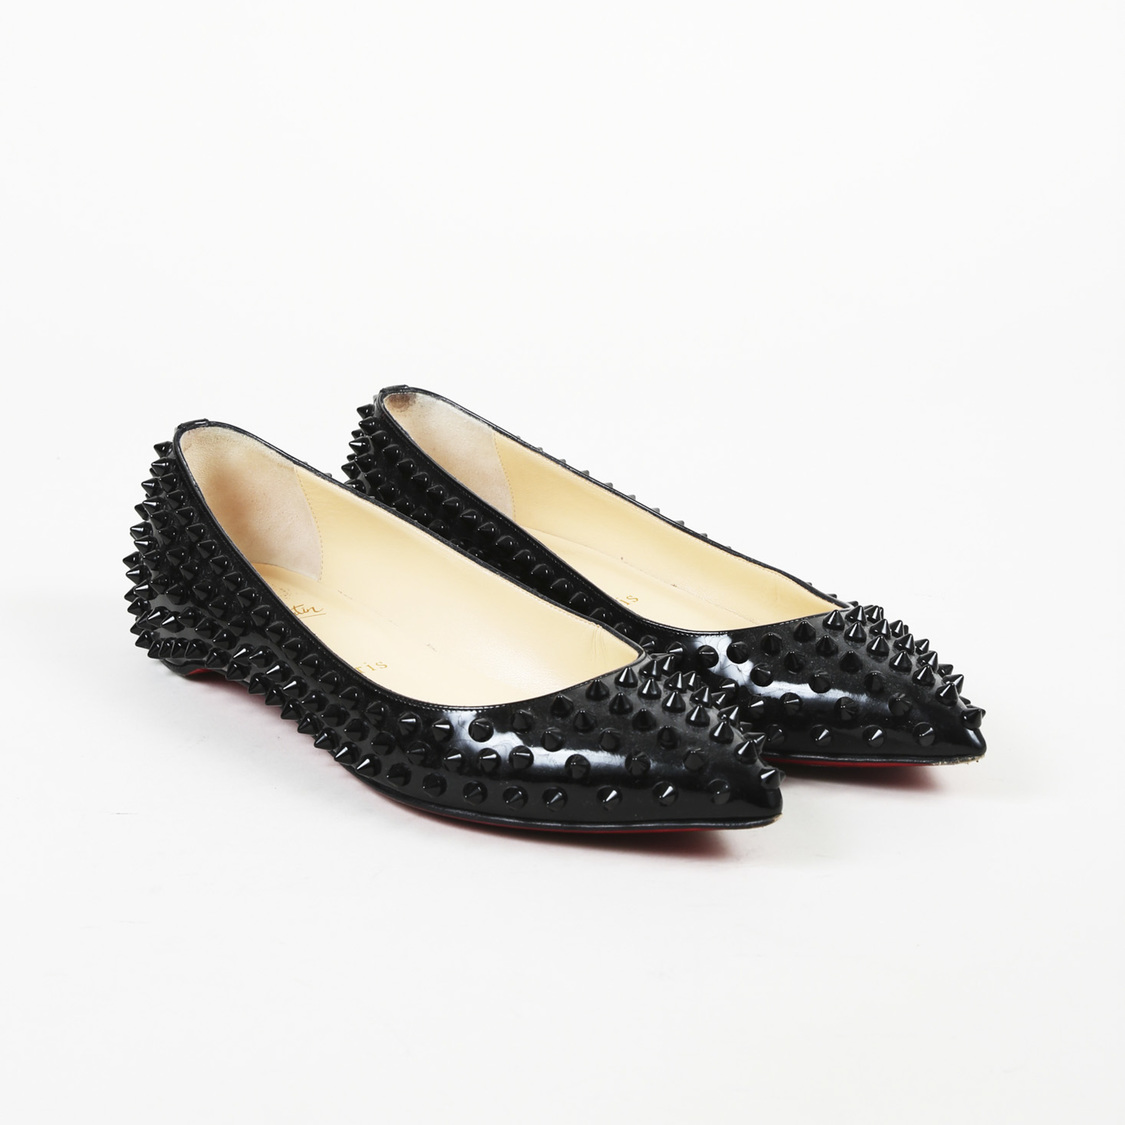 28c37810762 Details about Christian Louboutin Patent Leather